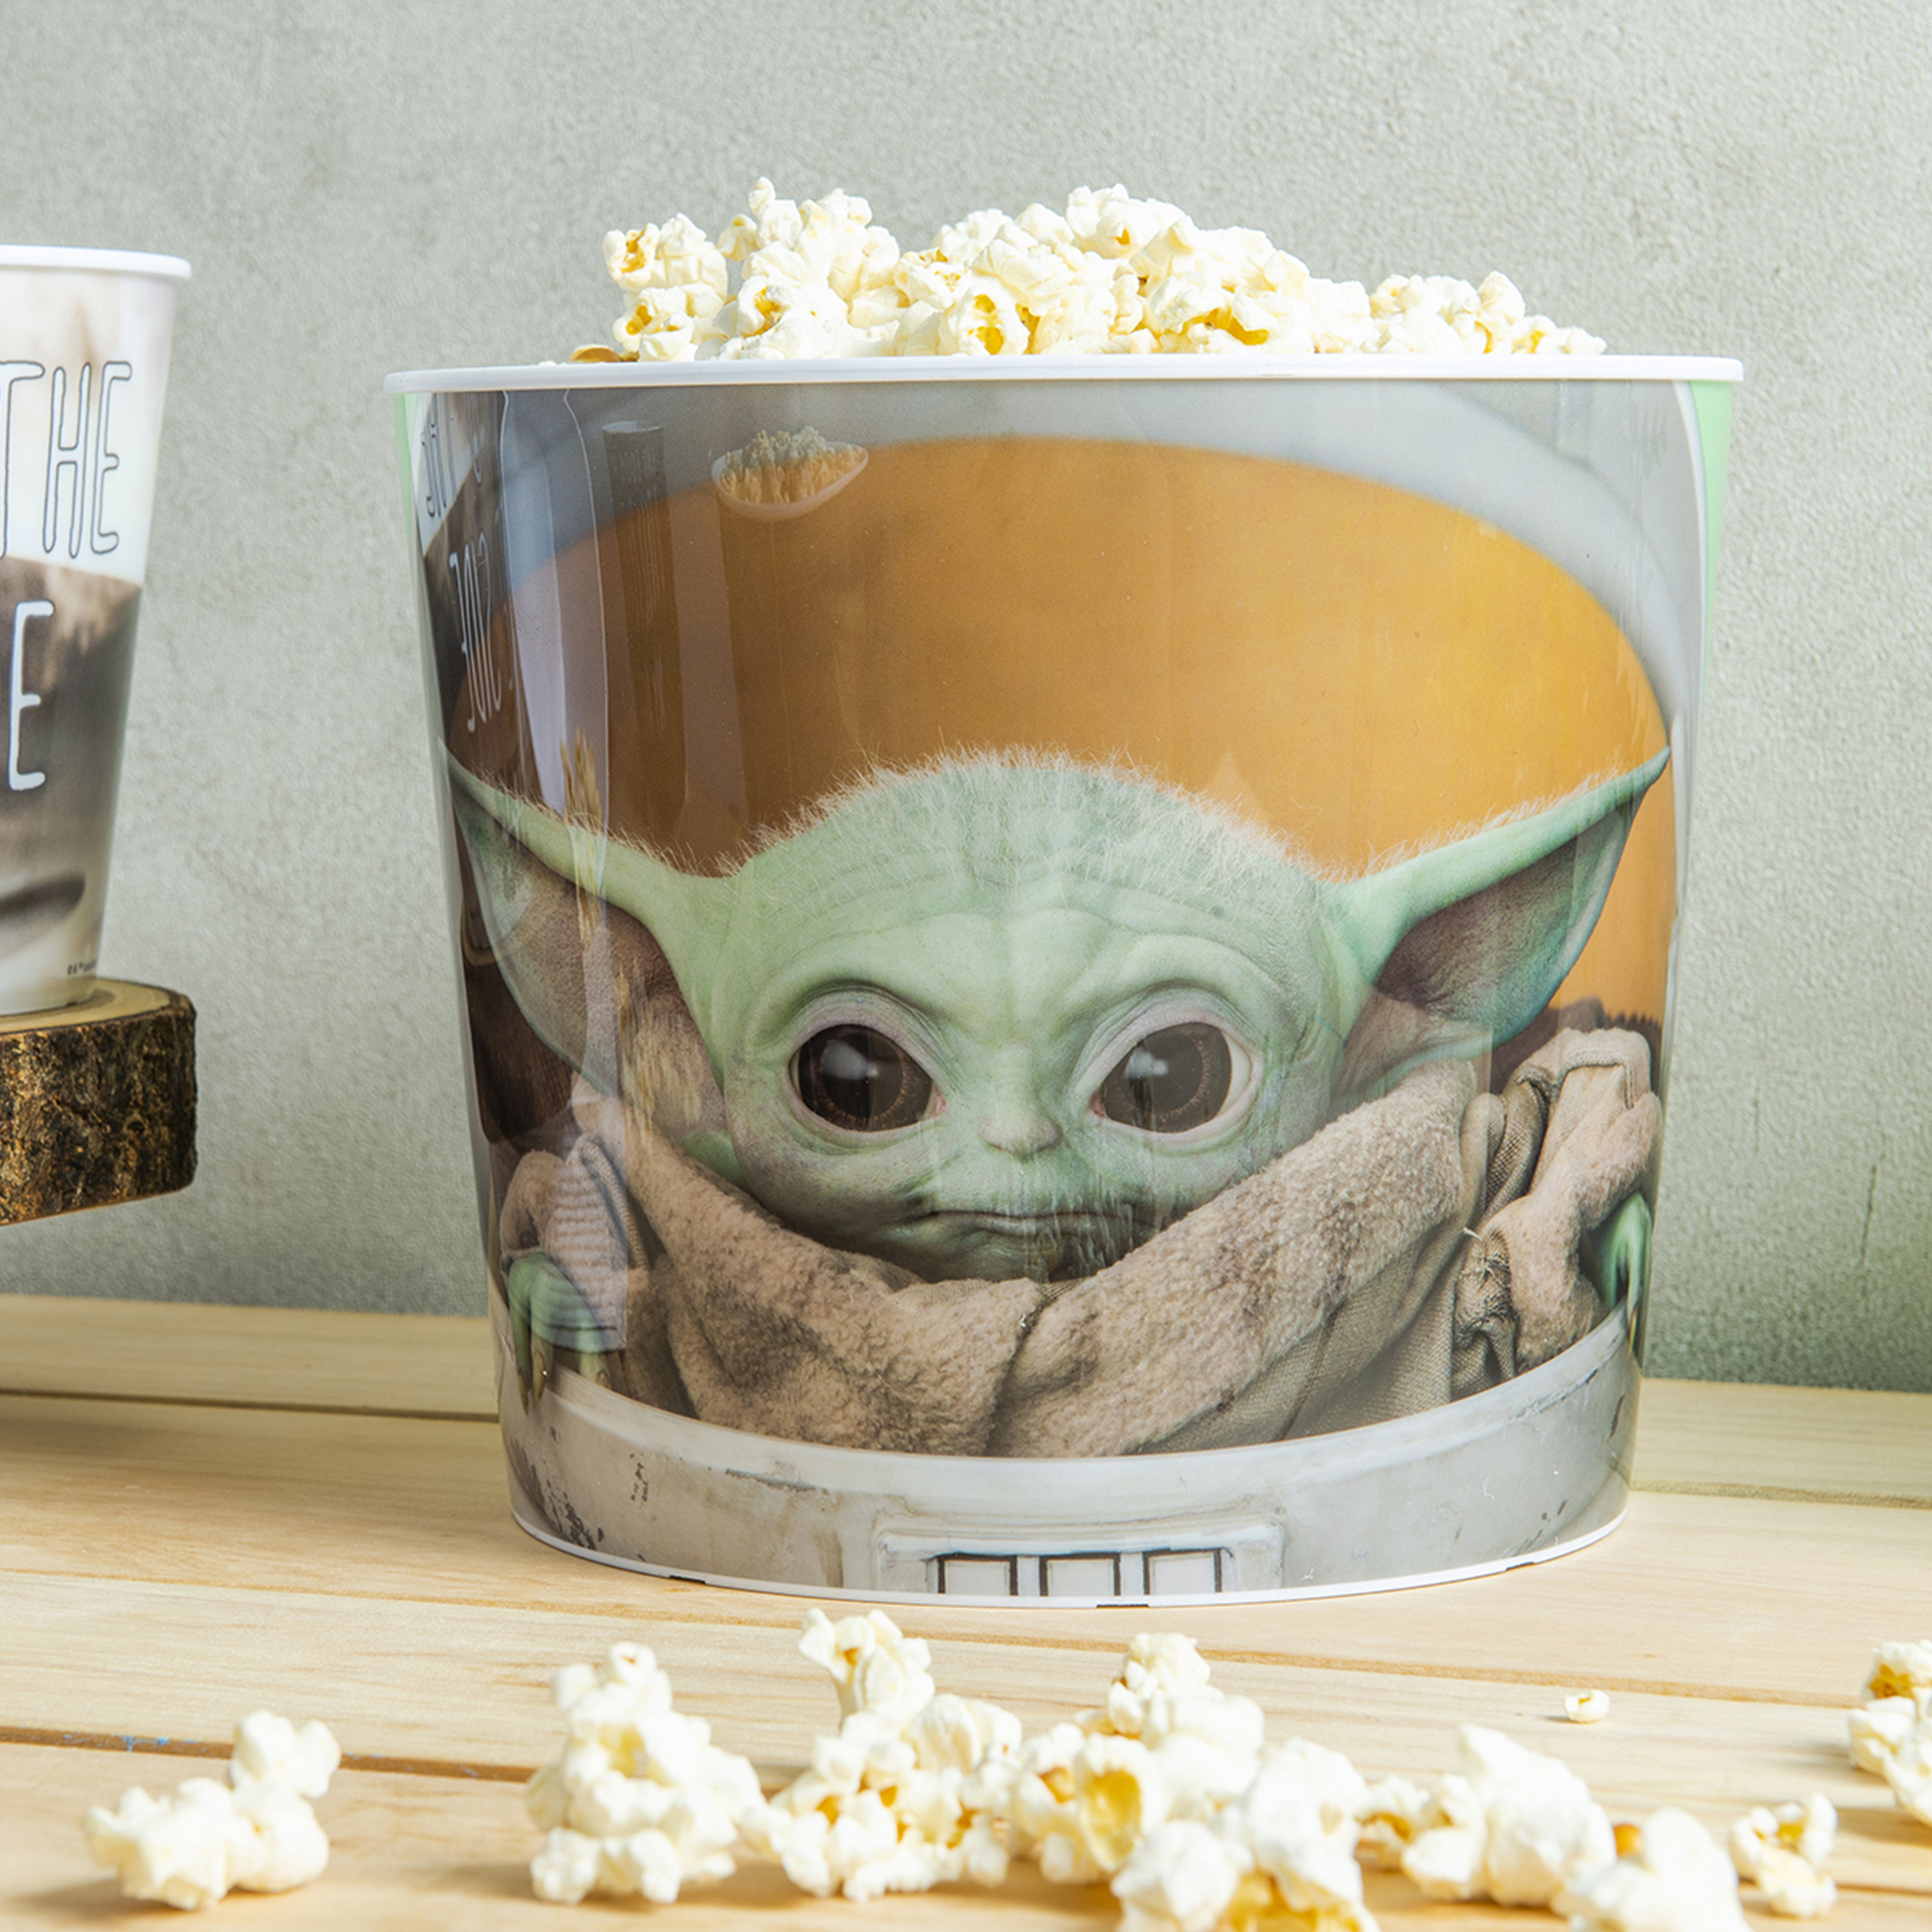 Star Wars: The Mandalorian Plastic Popcorn Container and Bowls, The Child (Baby Yoda), 5-piece set slideshow image 4